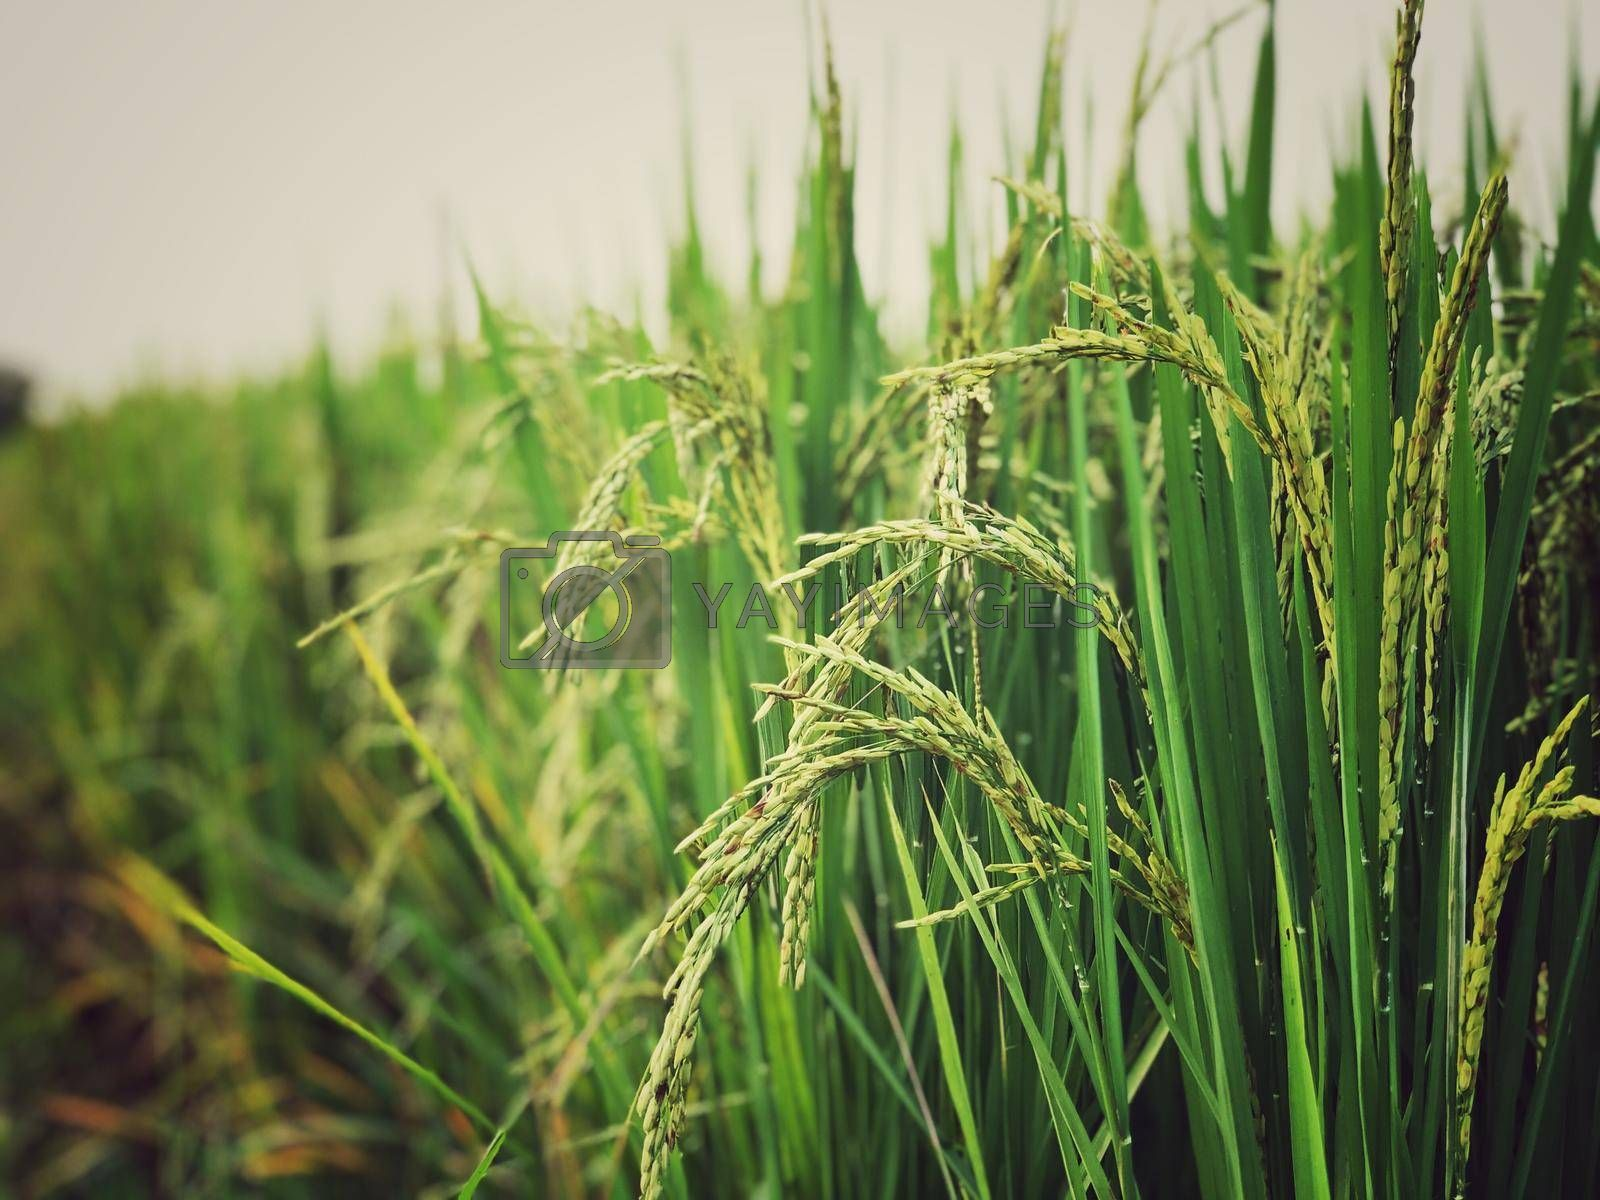 Beautiful green rice field and ear of rice. Close up of rice in the field.